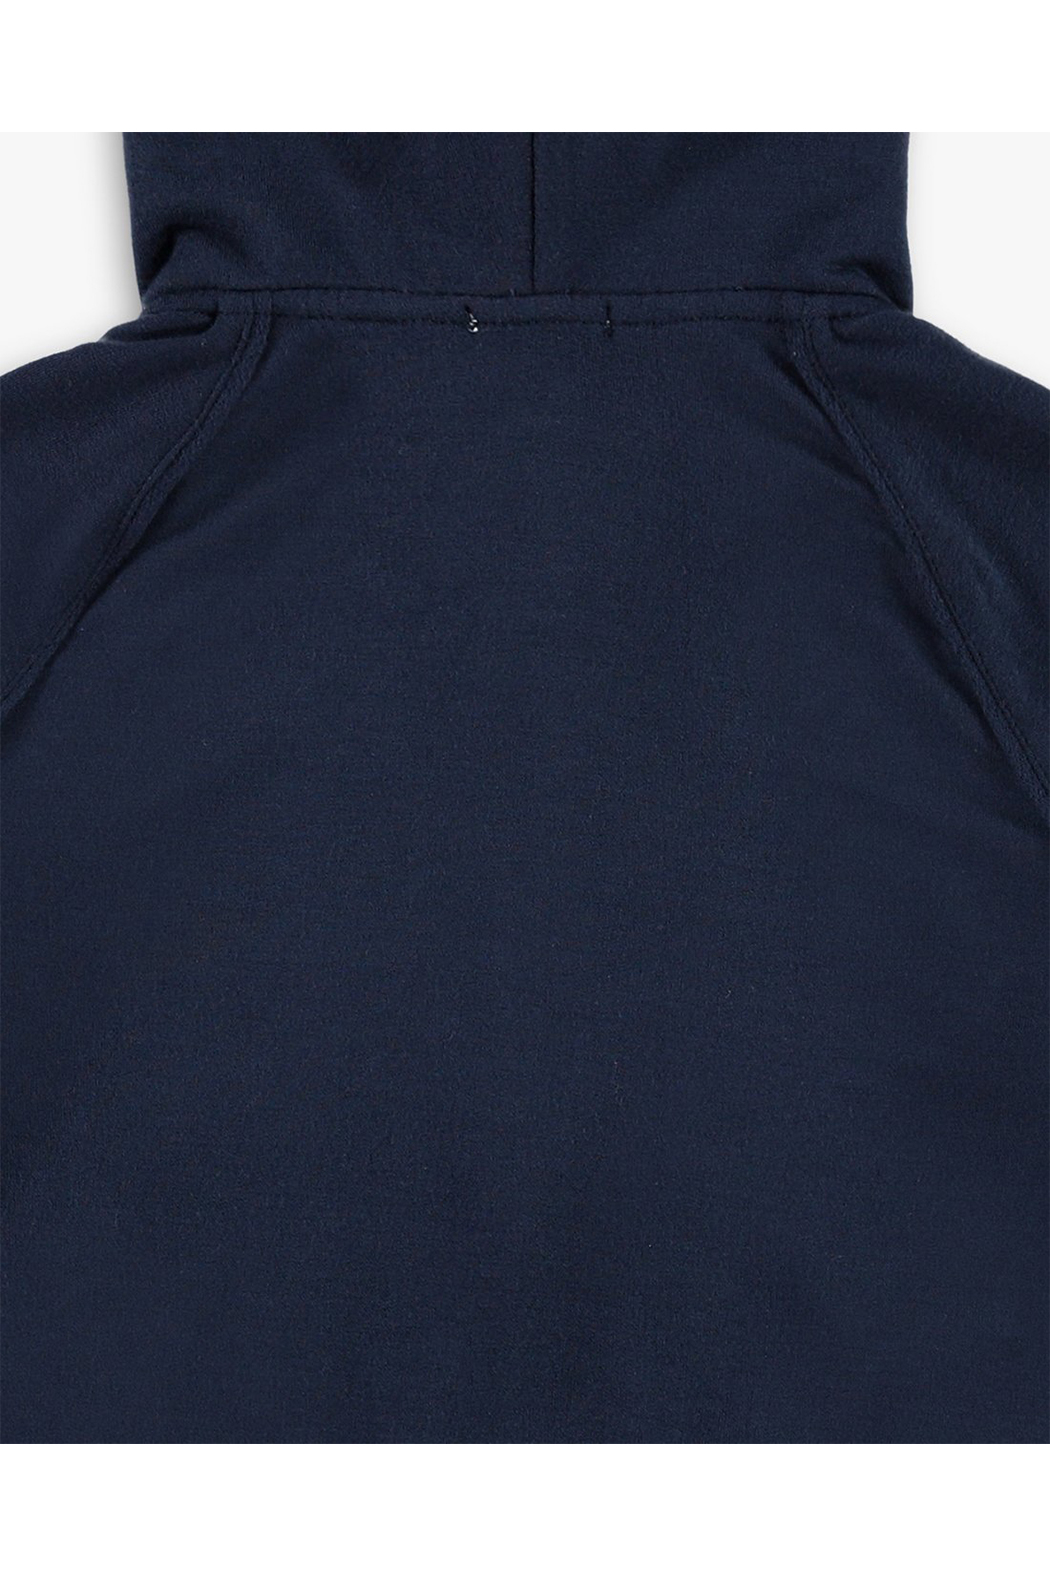 Splendid Super Soft French Terry Hoodie - Back Cropped Image